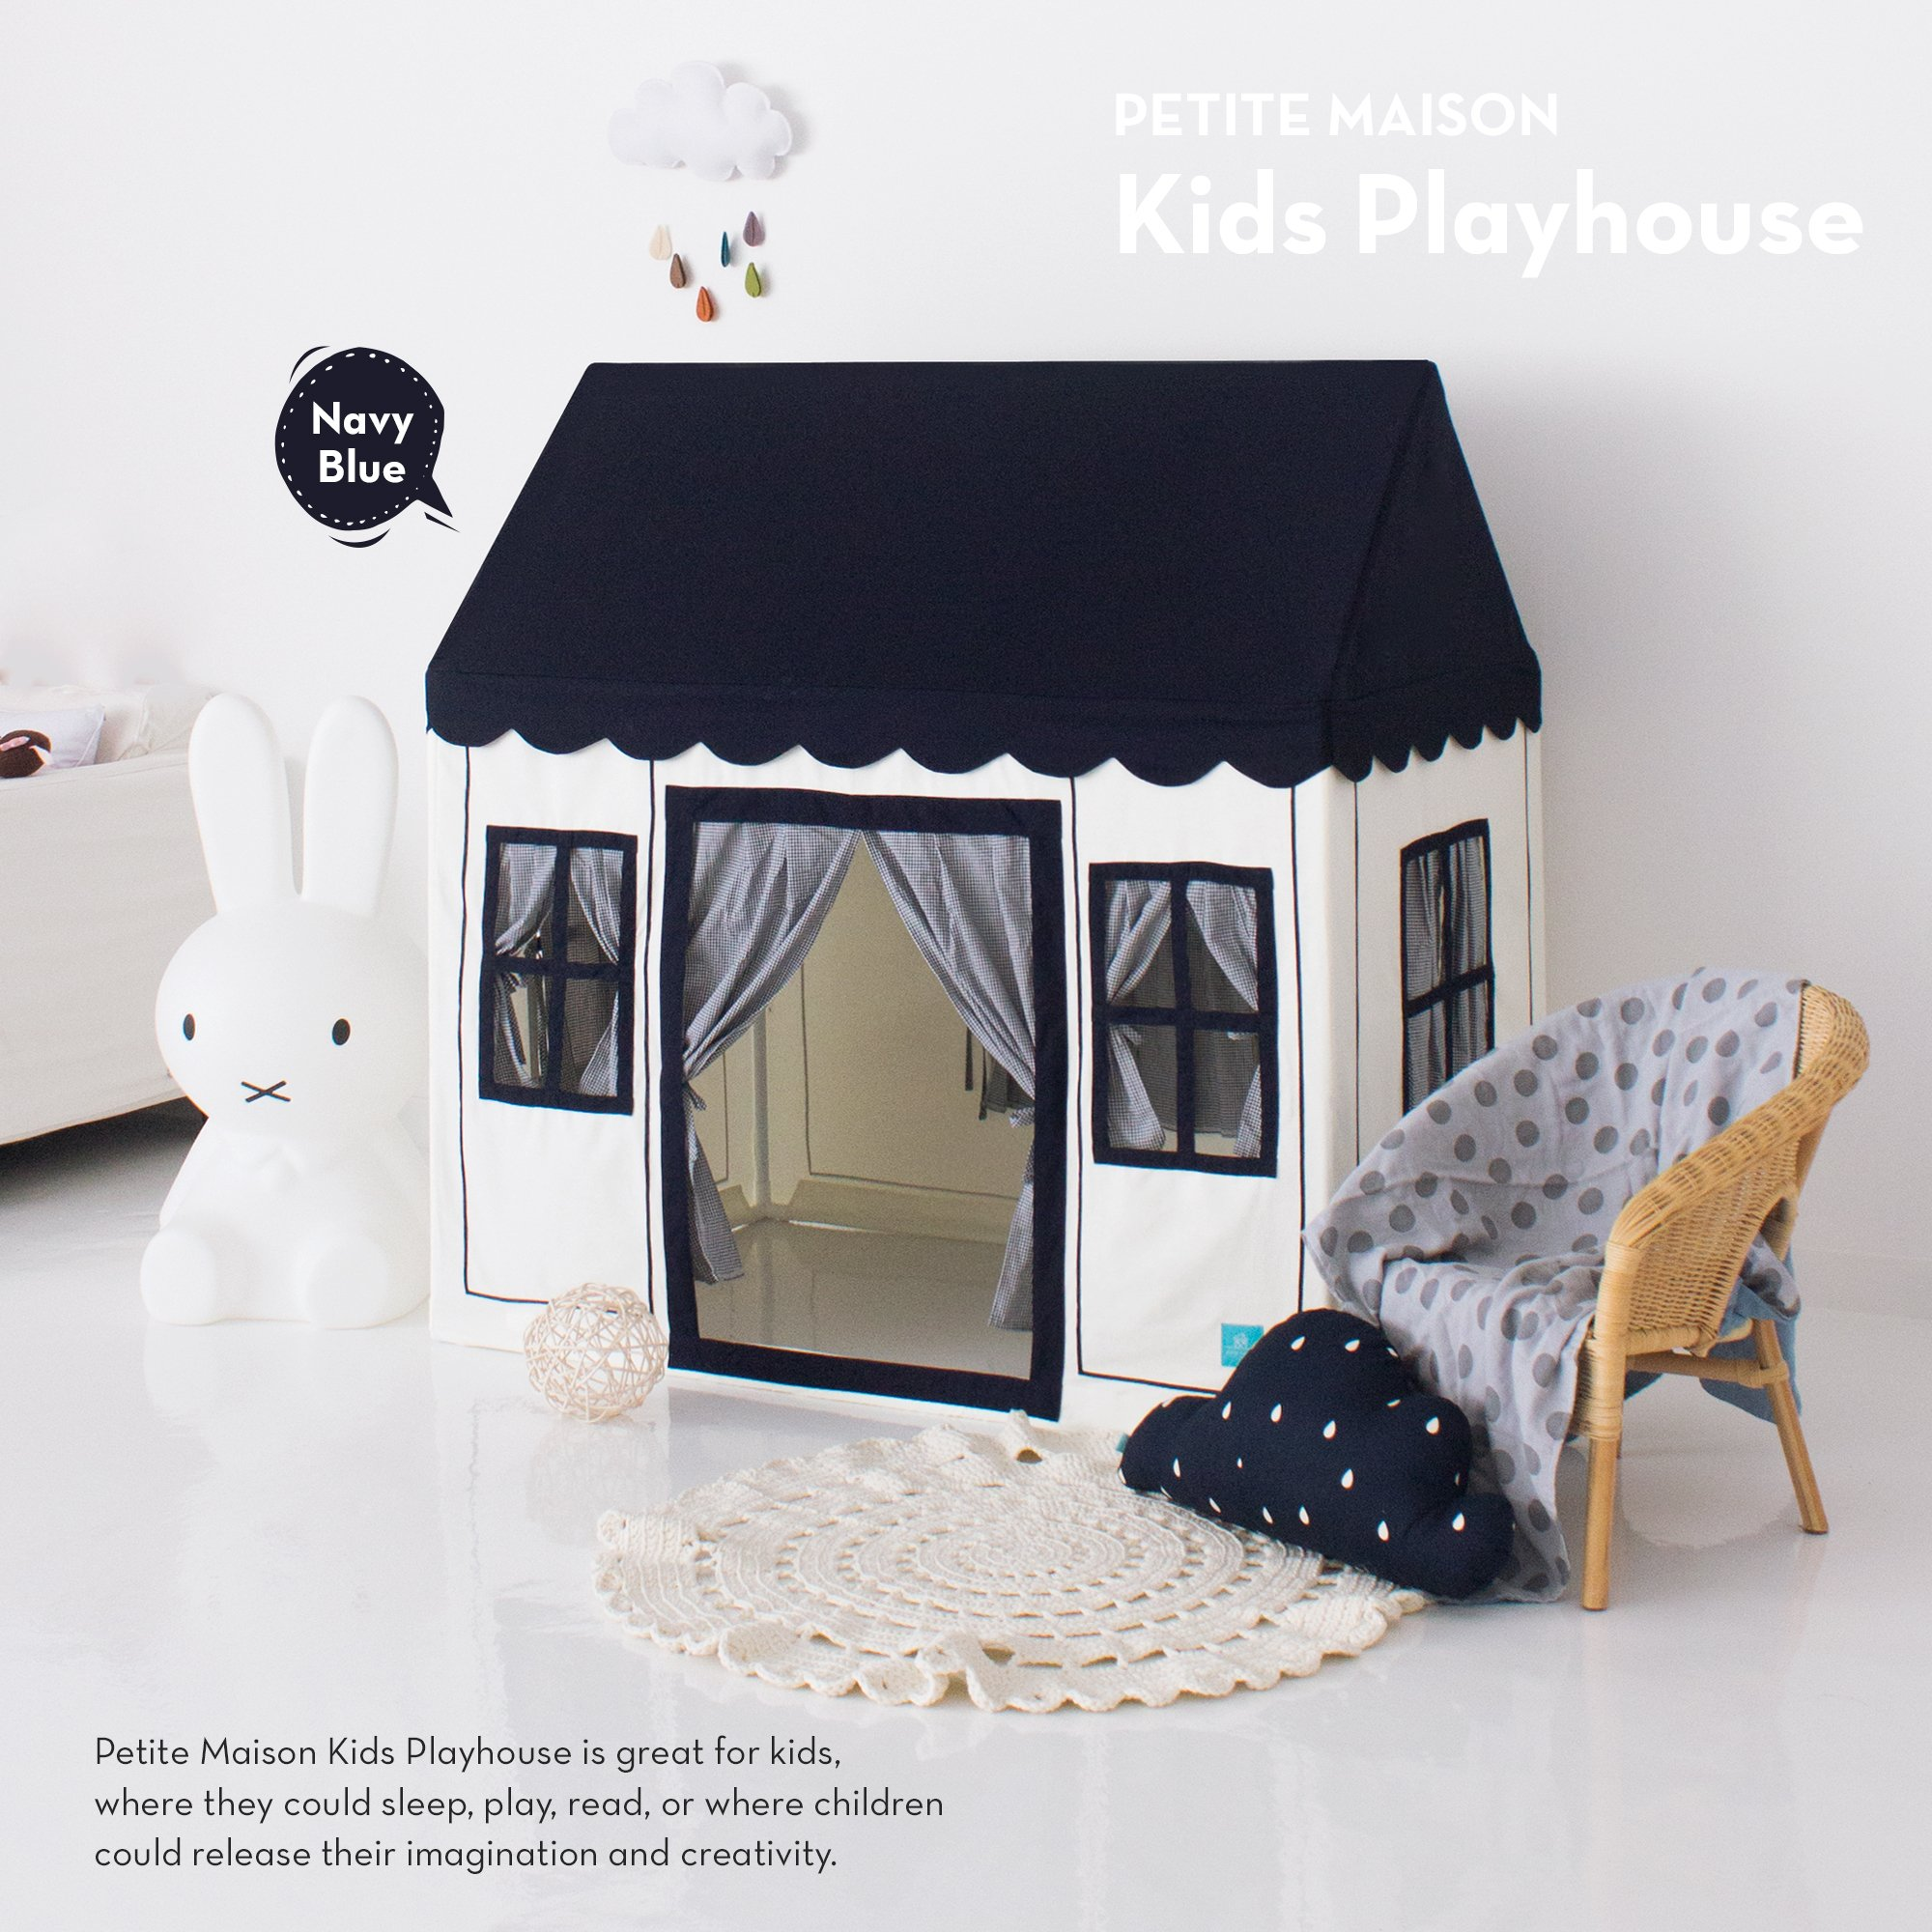 Kids Play House Tent, [Petite Maison] Hand Made Premium Quality Playhouse for Indoor & Outdoor, Light, Easy Assembly - Navy Blue